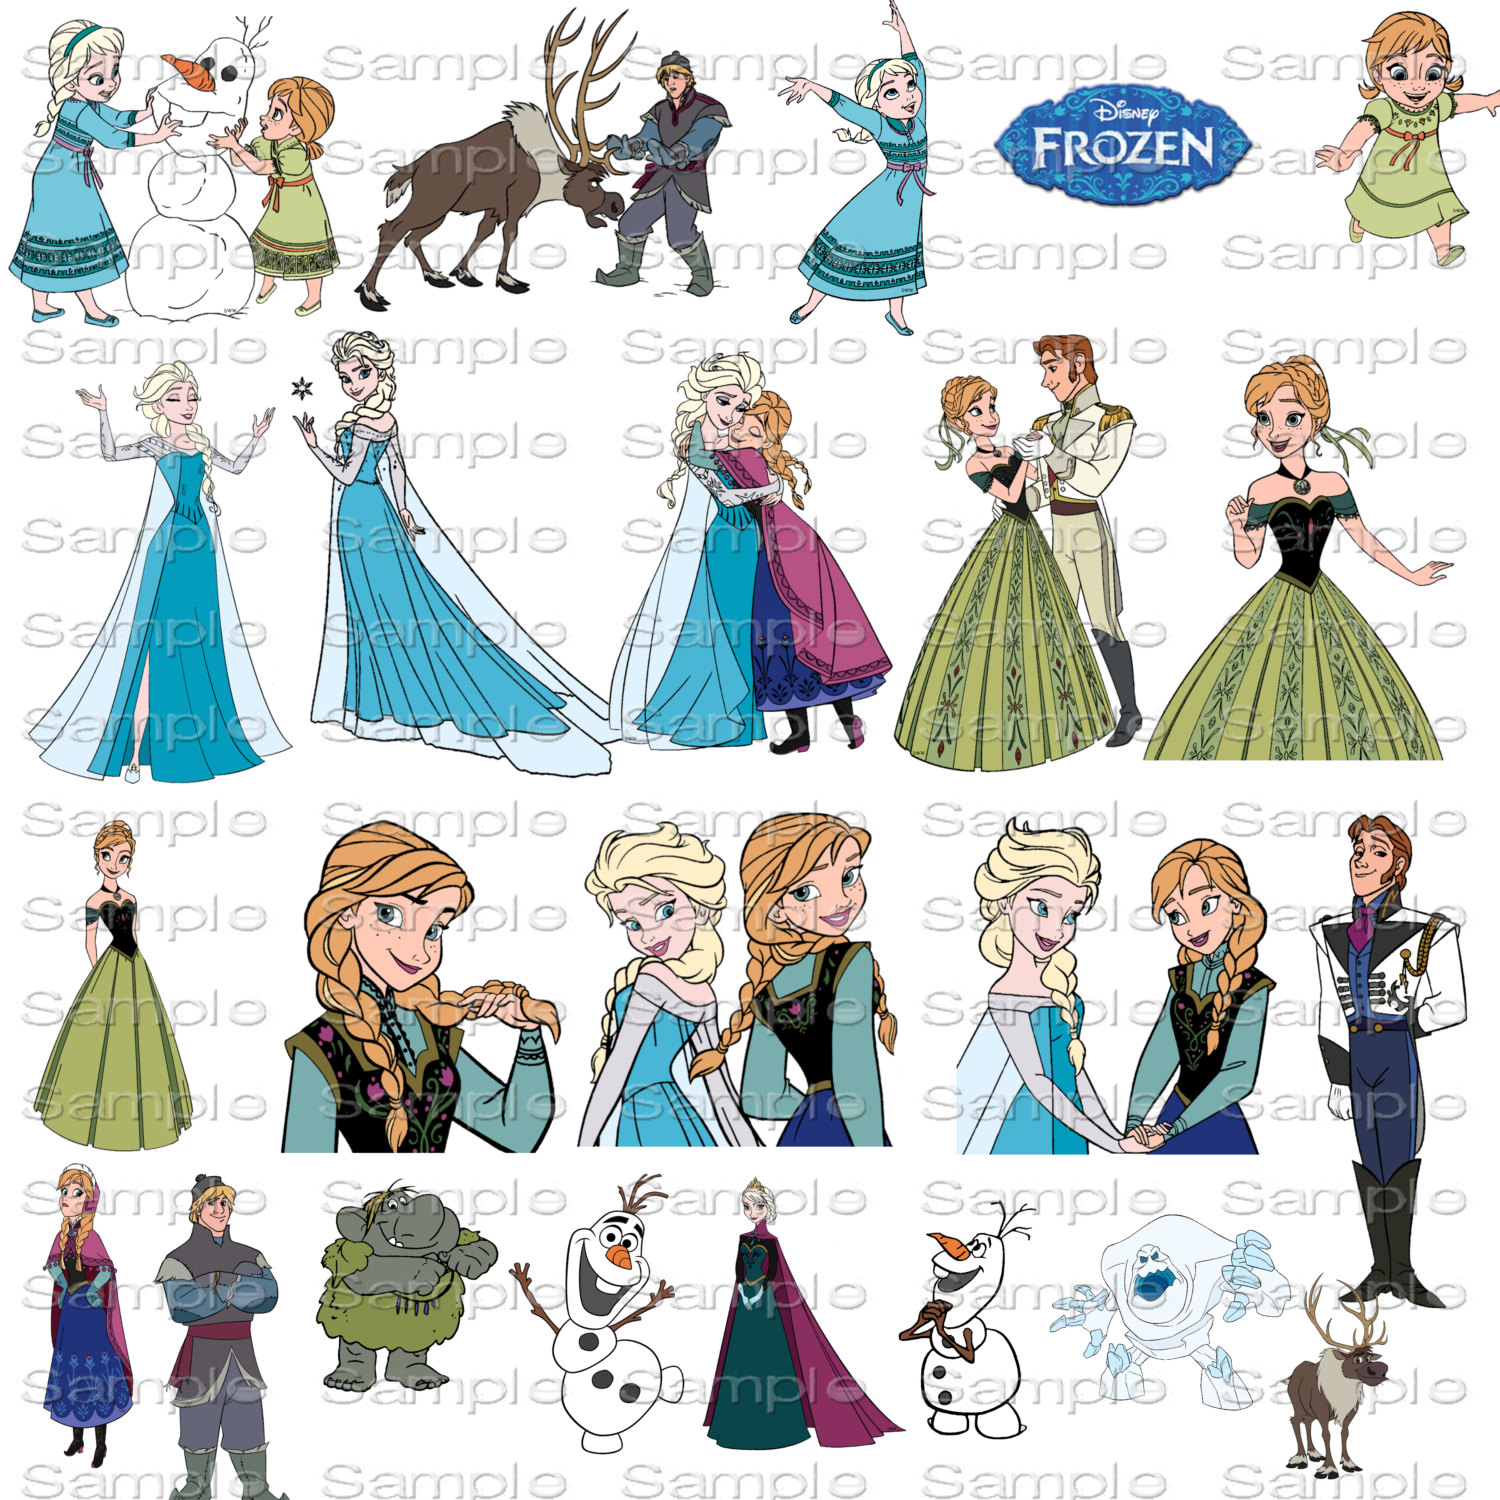 Disney frozen clipart character images transparent library Frozen Character Clipart - Clipart Kid transparent library